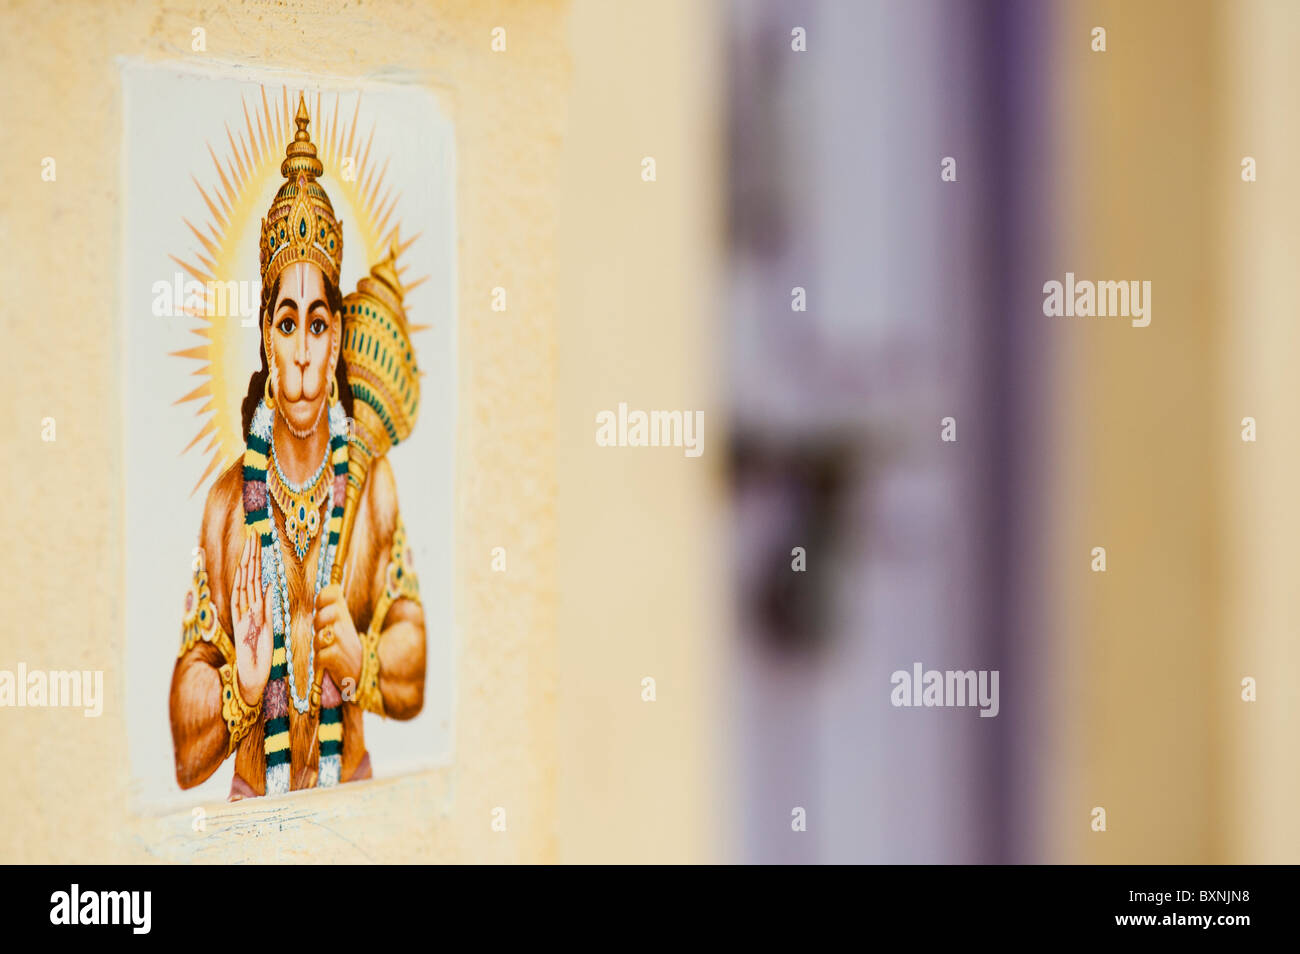 Hanuman ceramic wall tile on the front of an Indian house. Andhra Pradesh, India - Stock Image